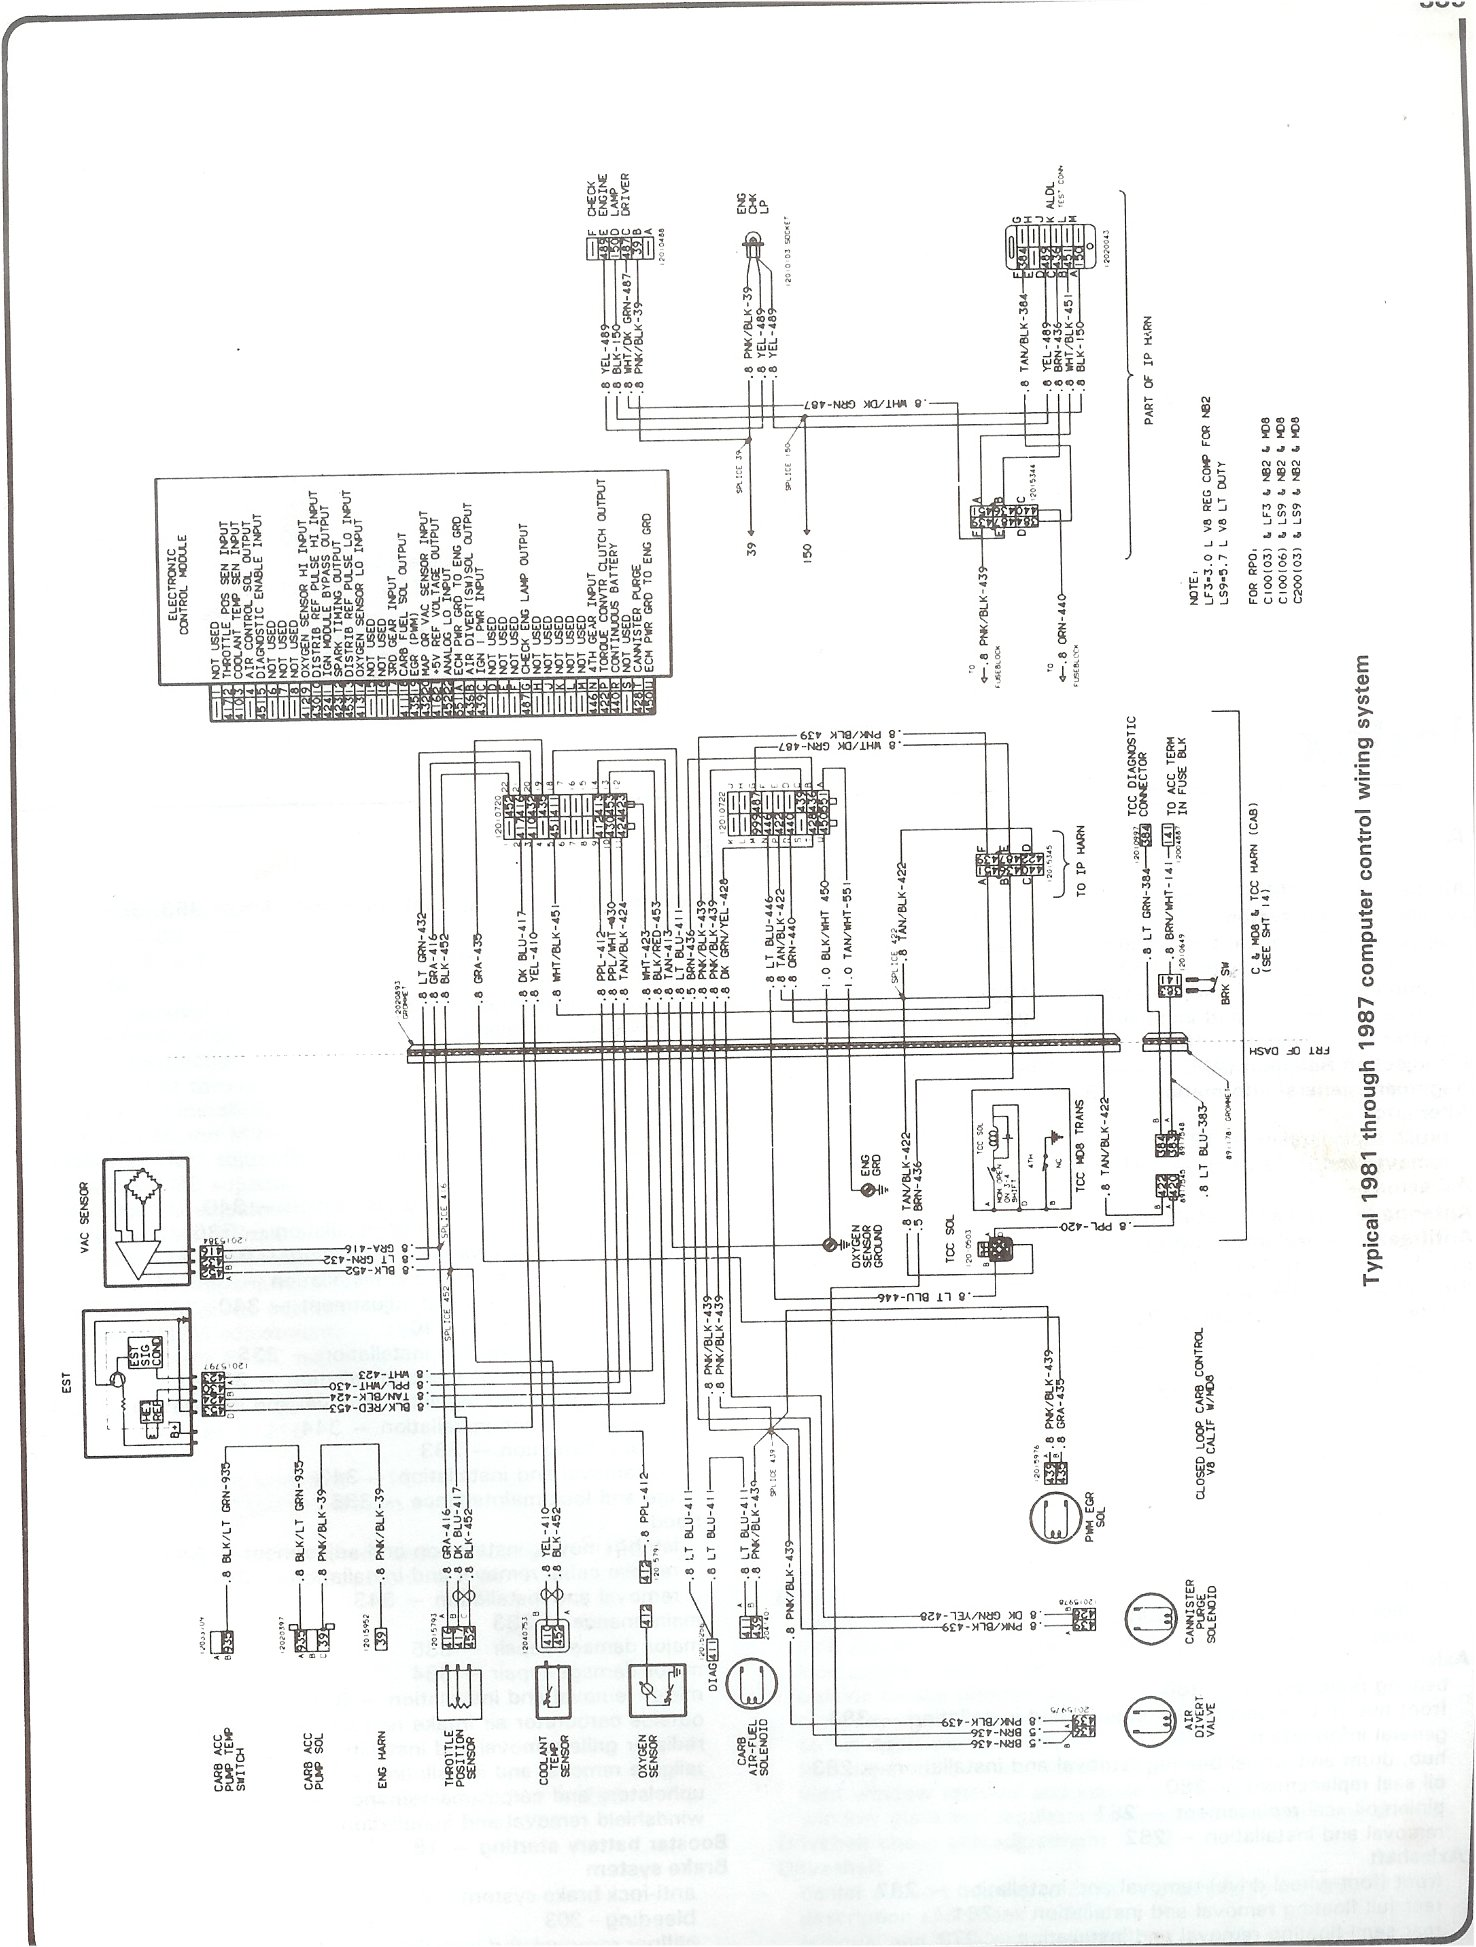 81 87_computer_control_wiring complete 73 87 wiring diagrams chevy s10 wiring harness diagram at honlapkeszites.co